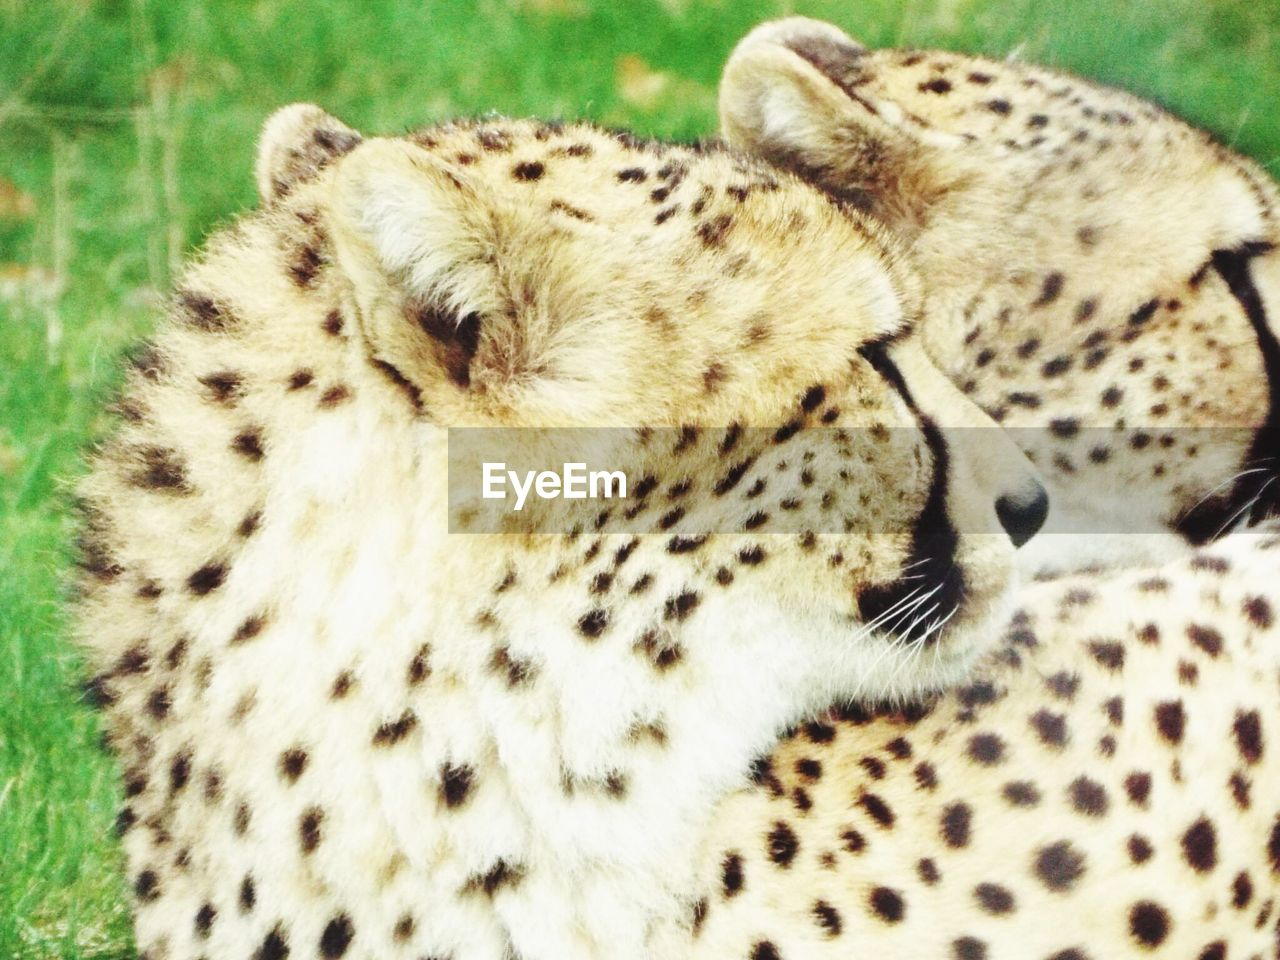 spotted, cheetah, animal themes, leopard, animal wildlife, animals in the wild, safari animals, one animal, animal markings, feline, no people, day, eyes closed, mammal, close-up, outdoors, nature